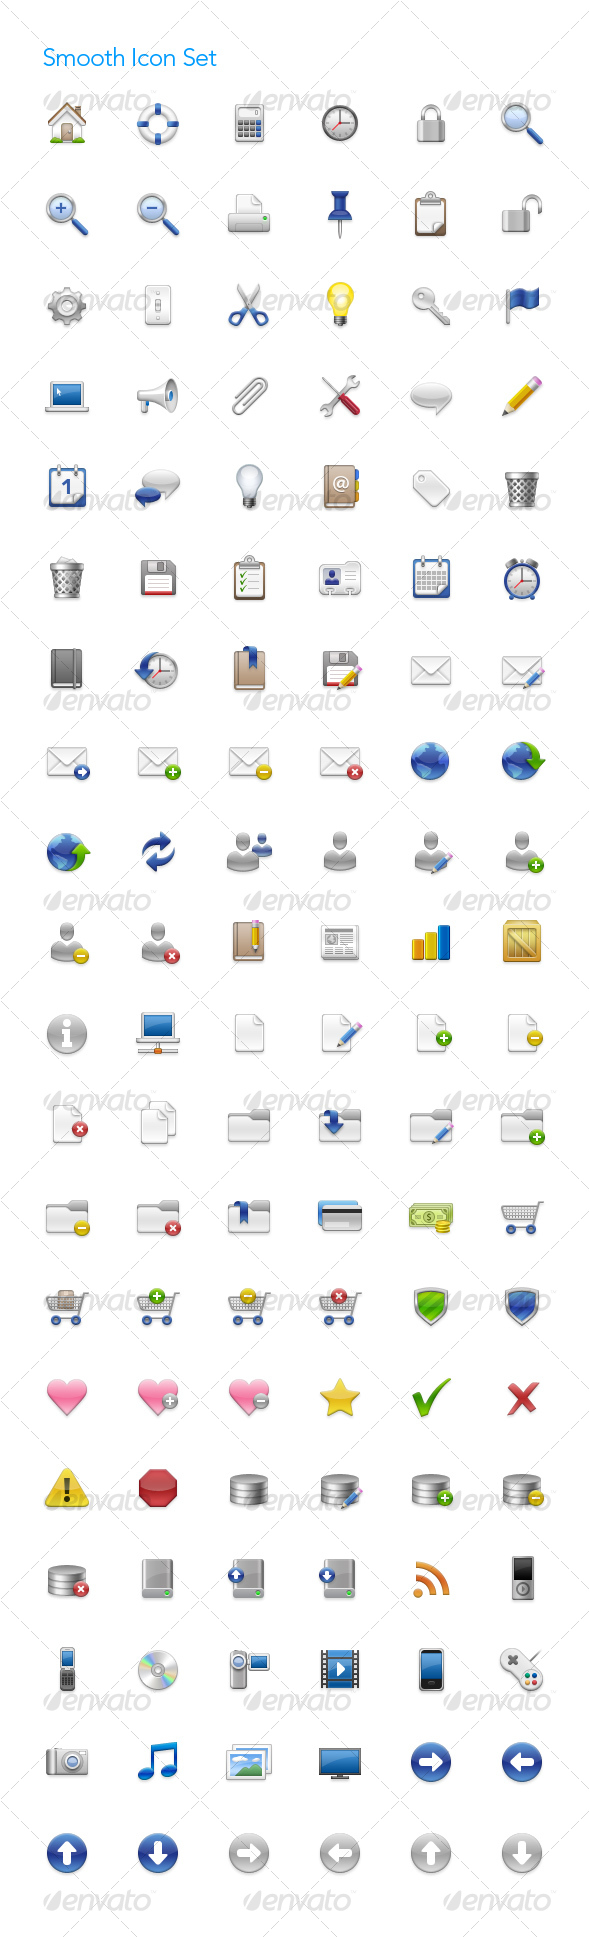 Smooth Icon Set